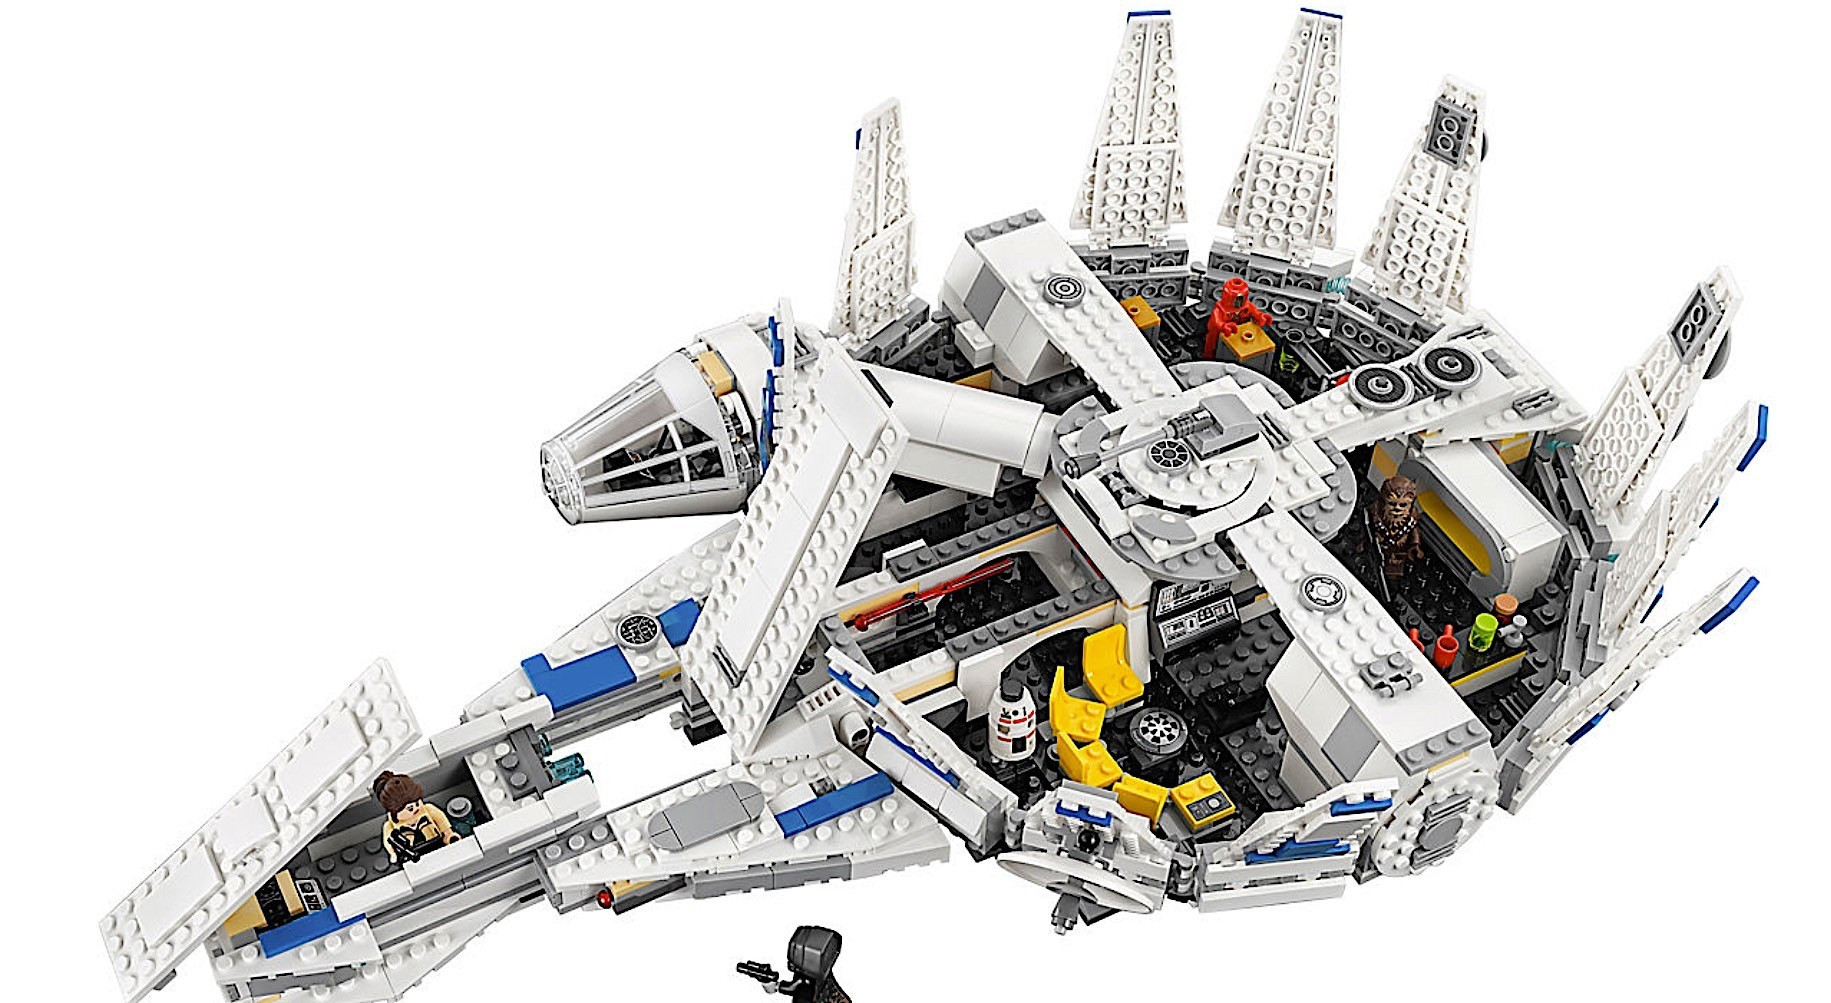 Solo Star Wars Story Lego Sets Hit The Shelves